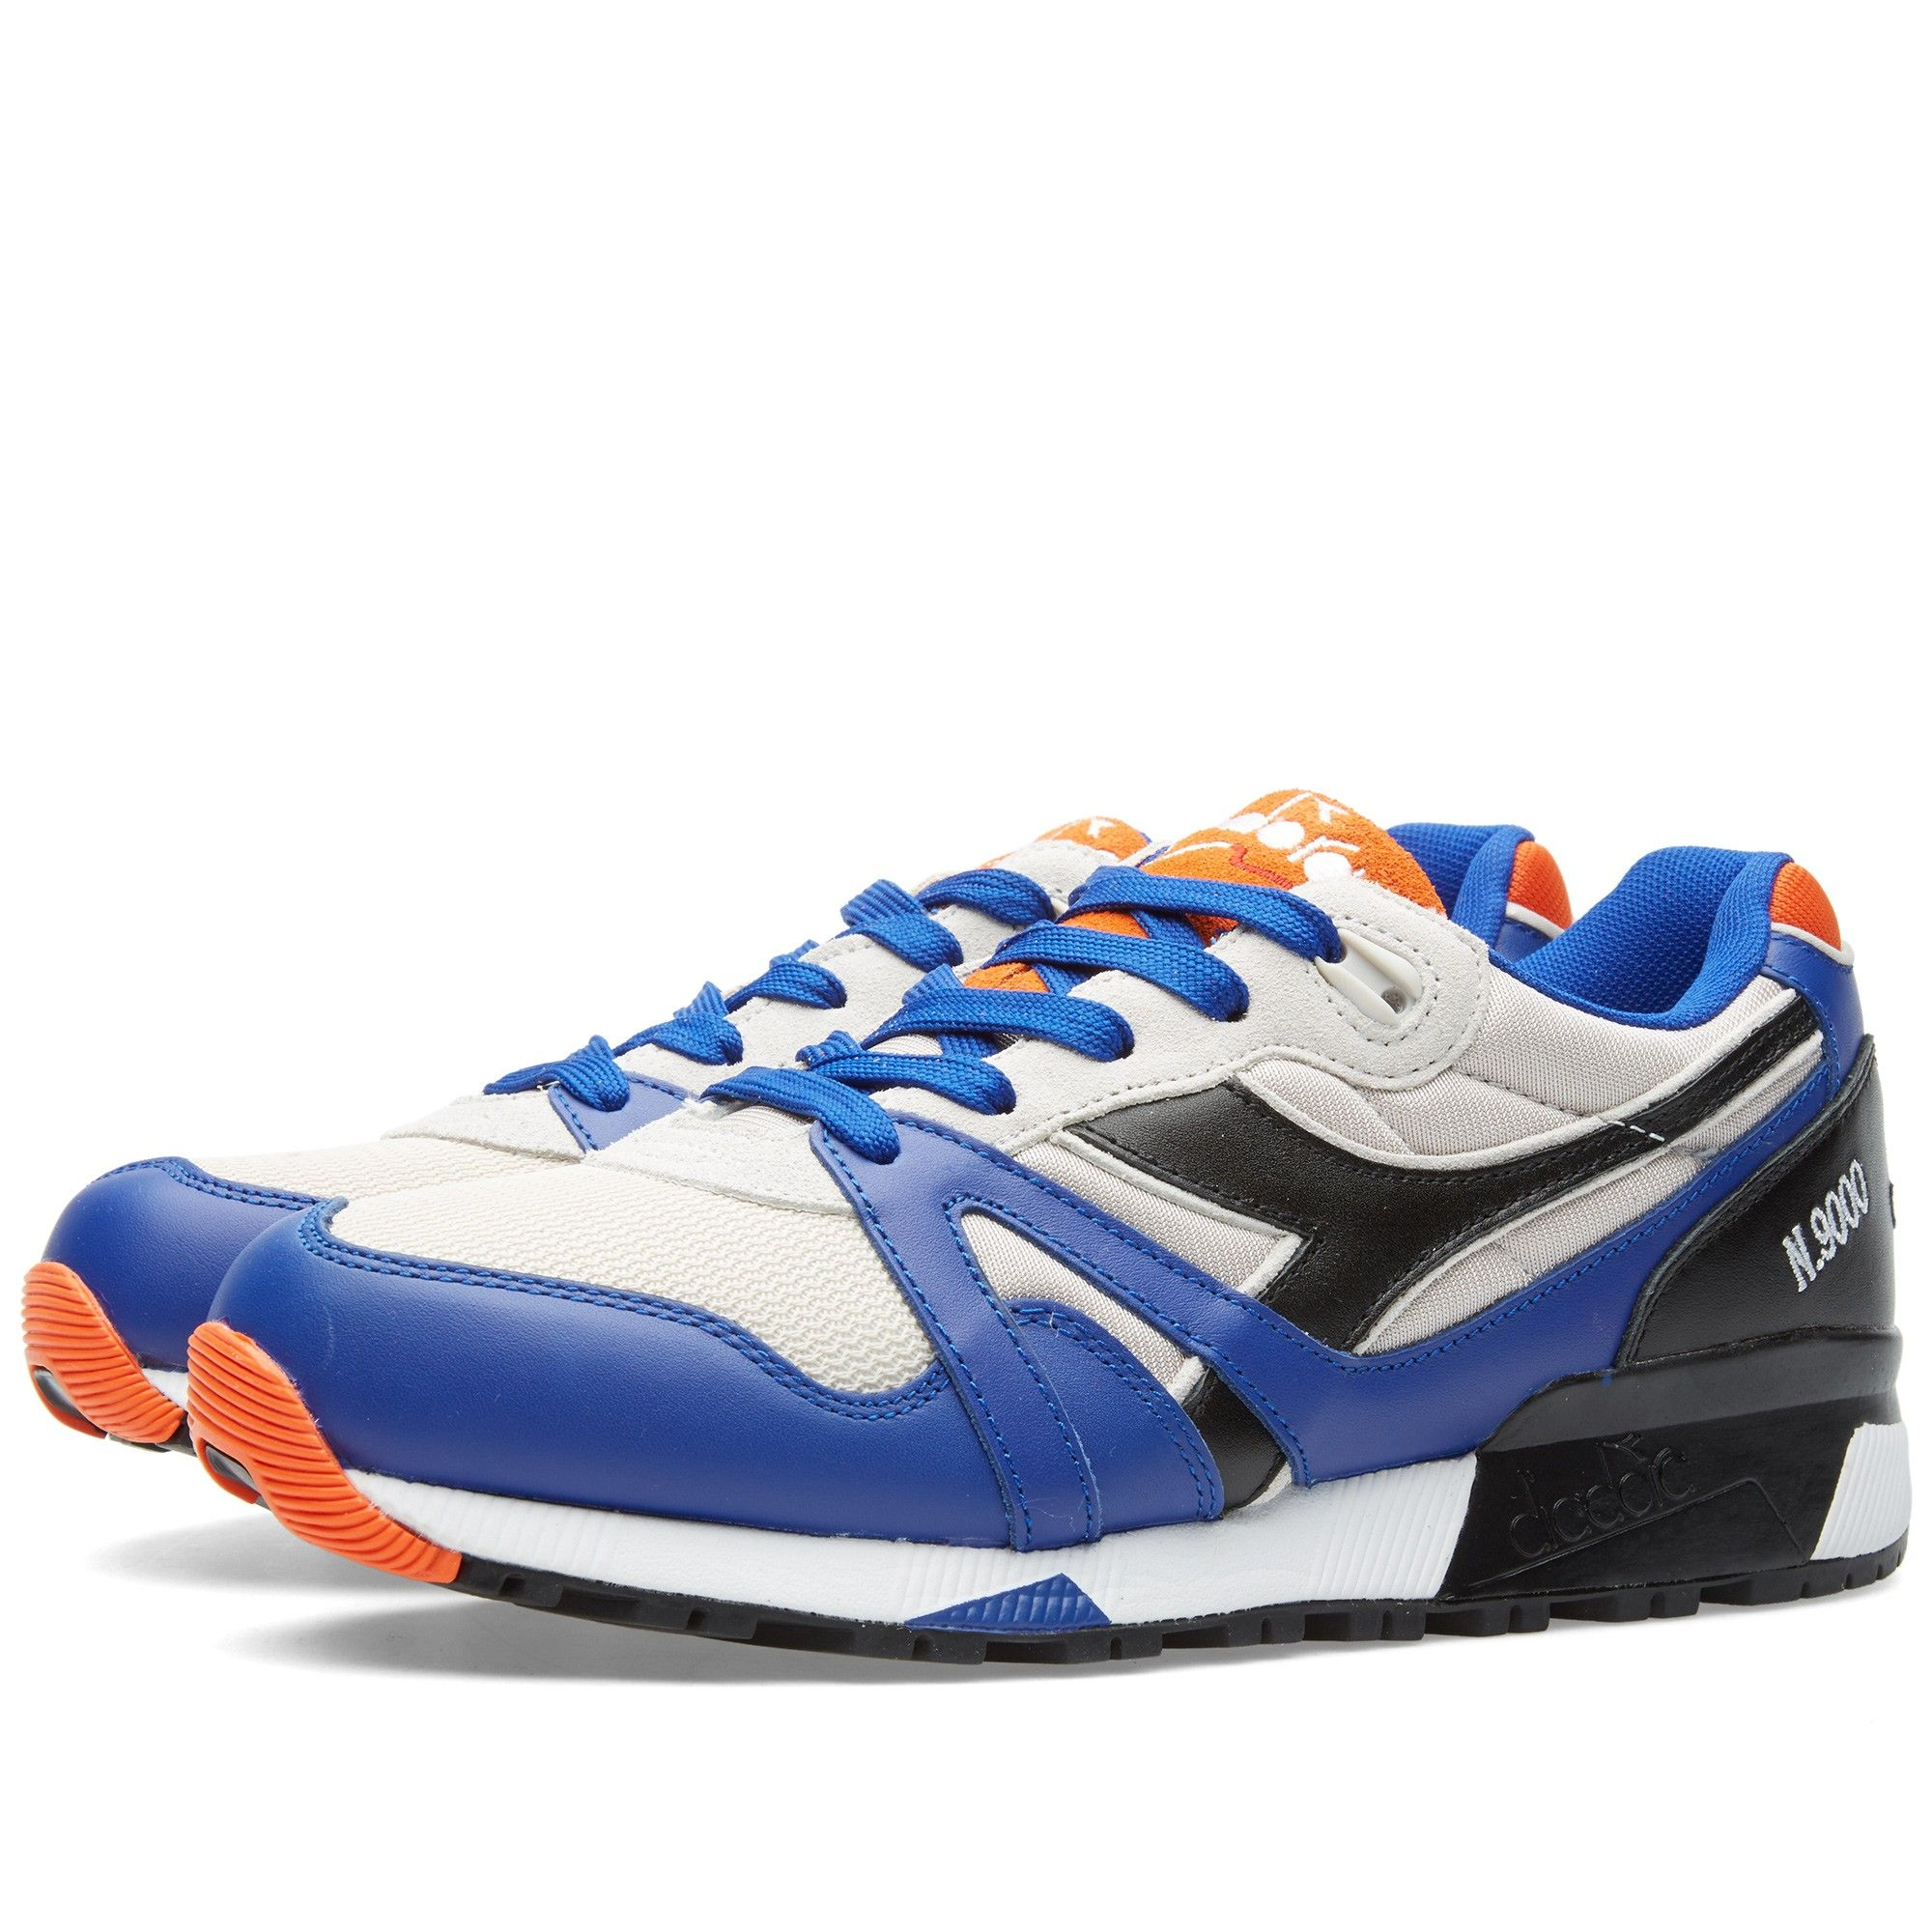 a3d8169f Diadora N9000 L-S ($80) | Sneakers | Sneakers, Footwear, Shoes